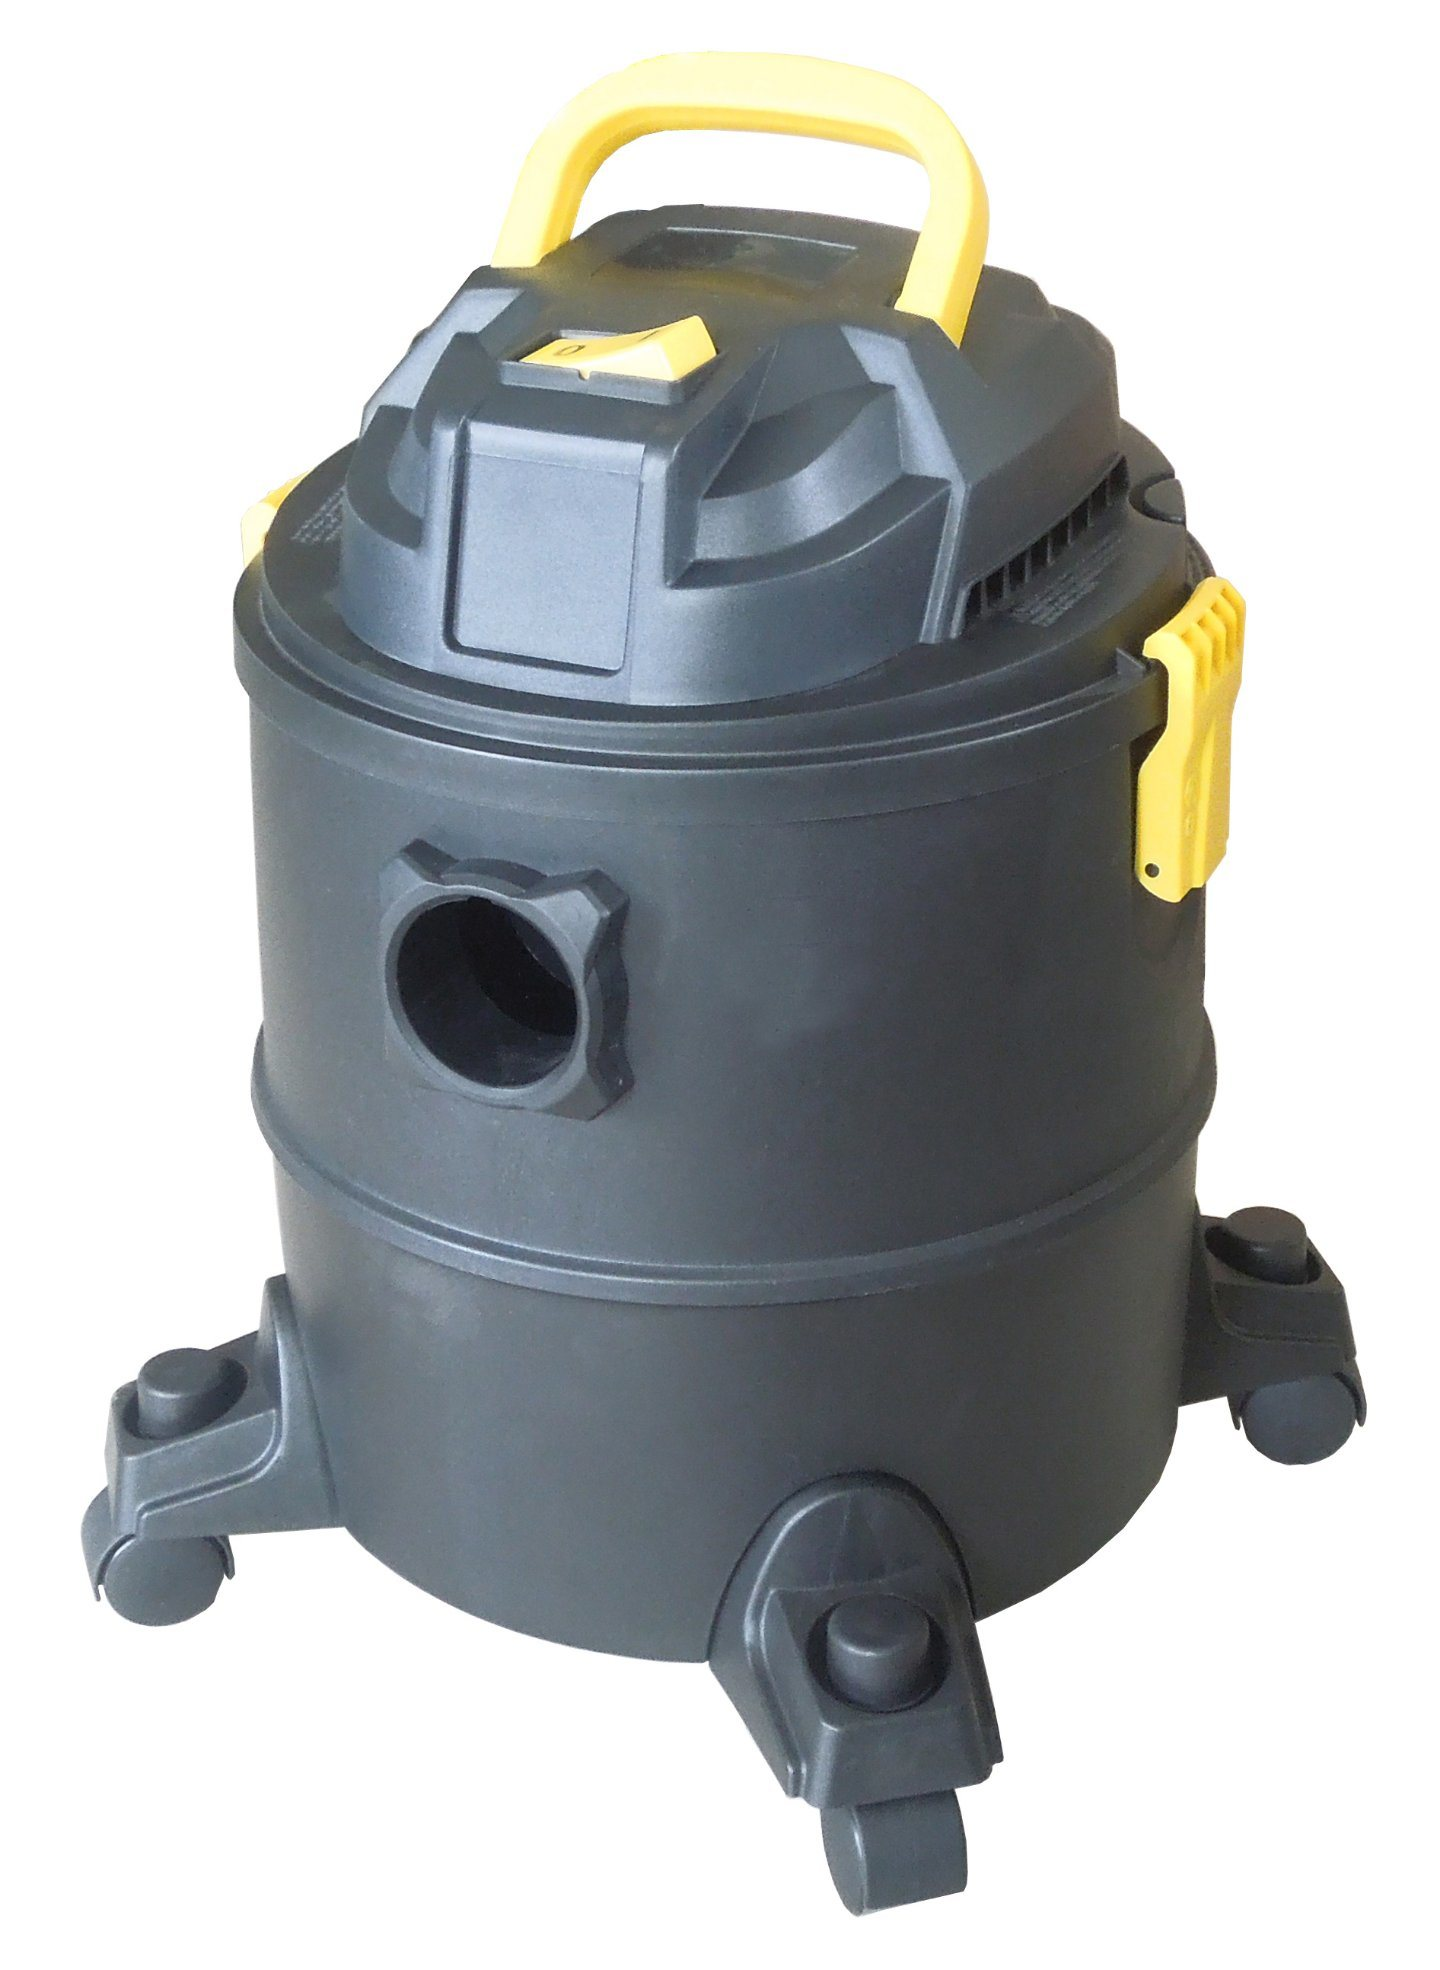 305p-20L 1400W Plastic Tank Wet Dry Water Dust Vacuum Cleaner with or Without Socket